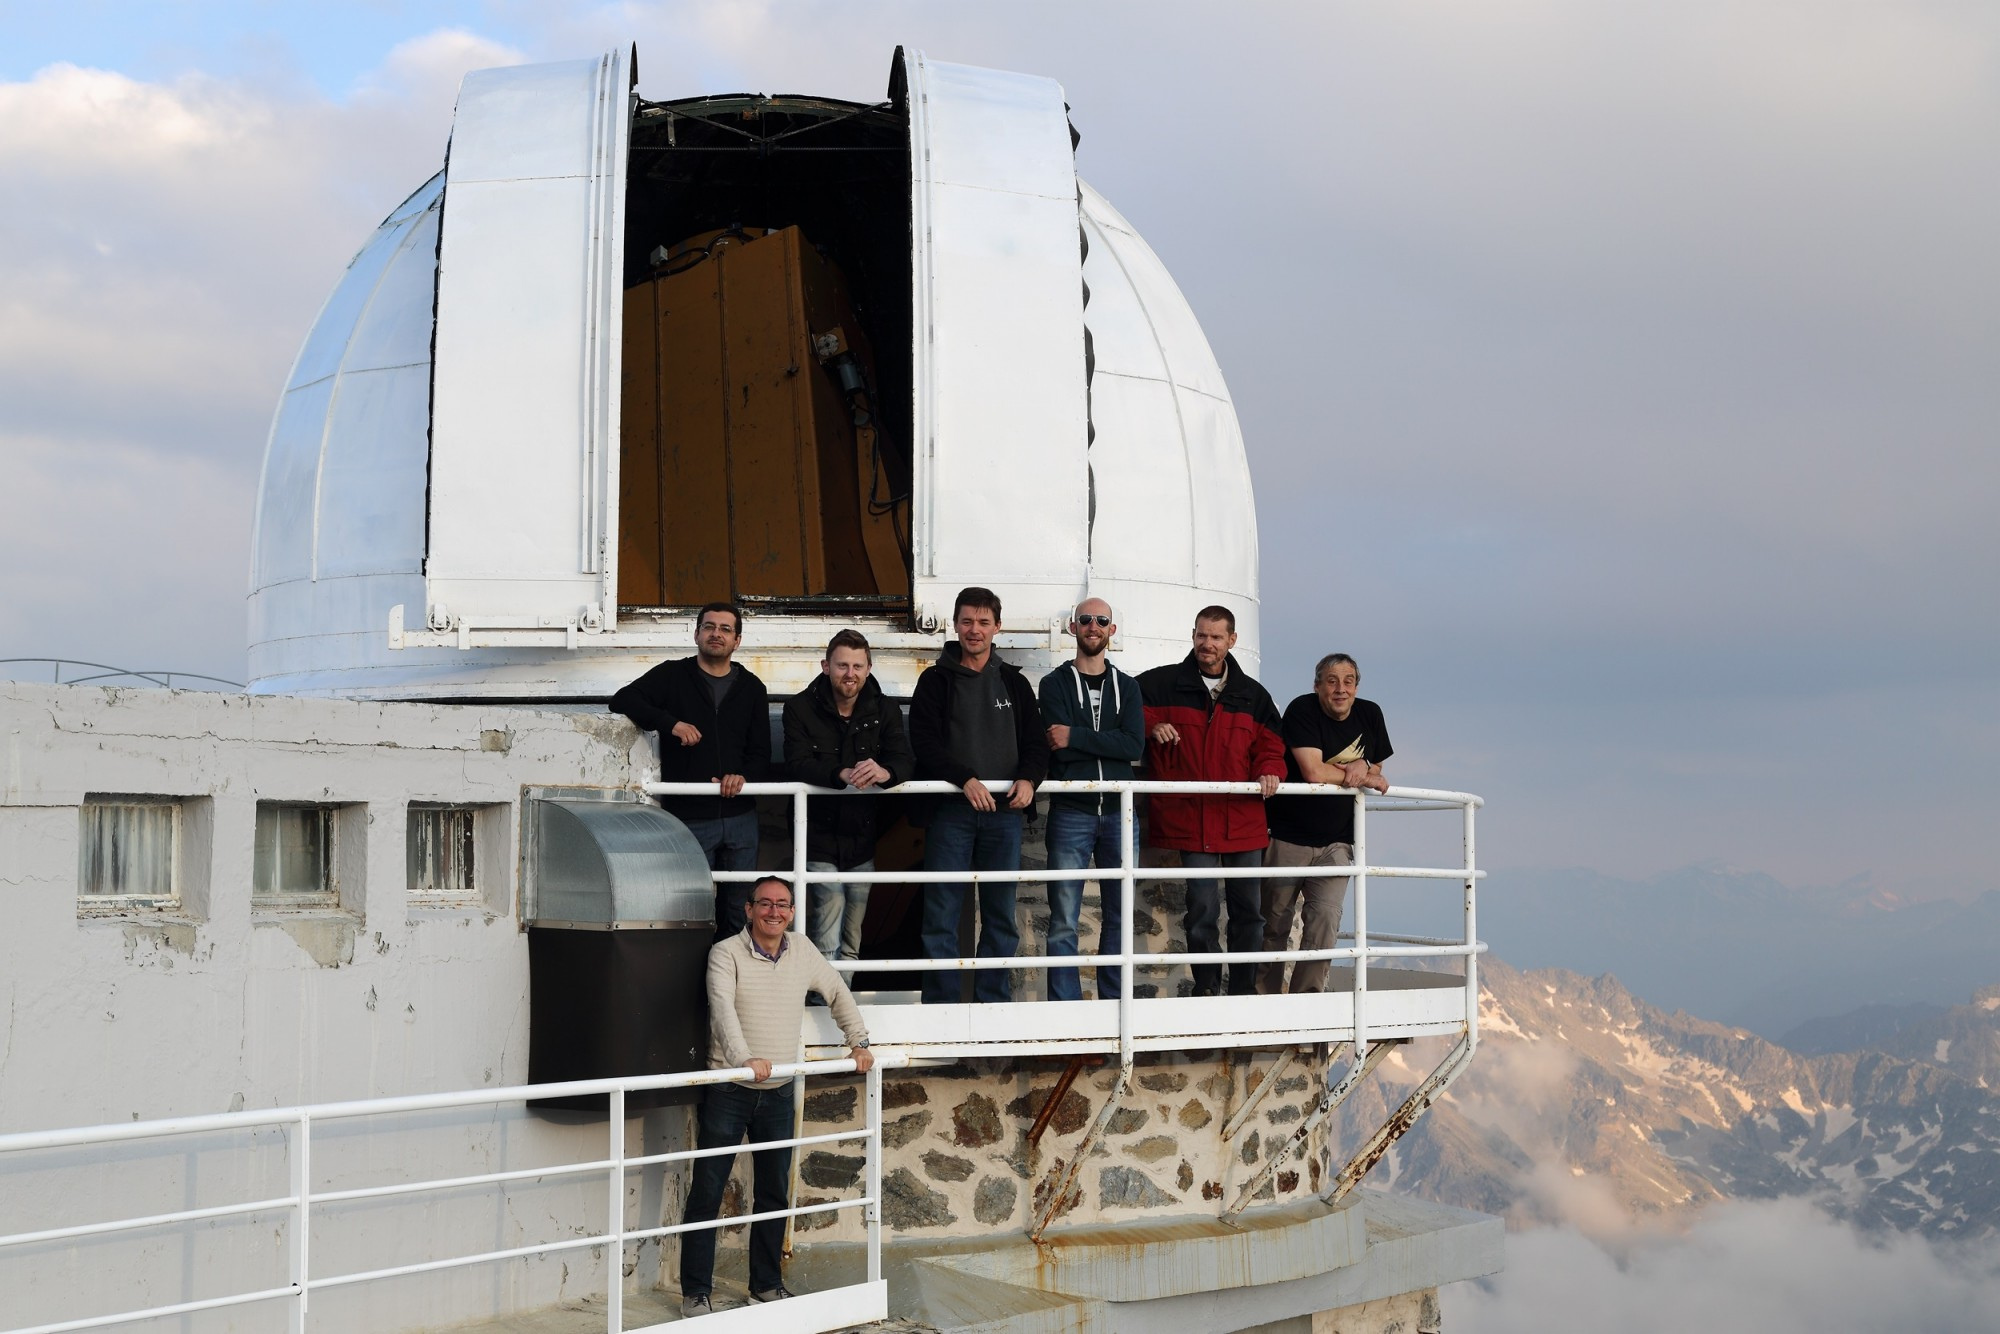 Collaborations between astronomers have let to the establishment of a network of small telescopes under Europlanet 2024 RI to support space missions with rapid-response ground-based observations. Credit: Ricardo Hueso.